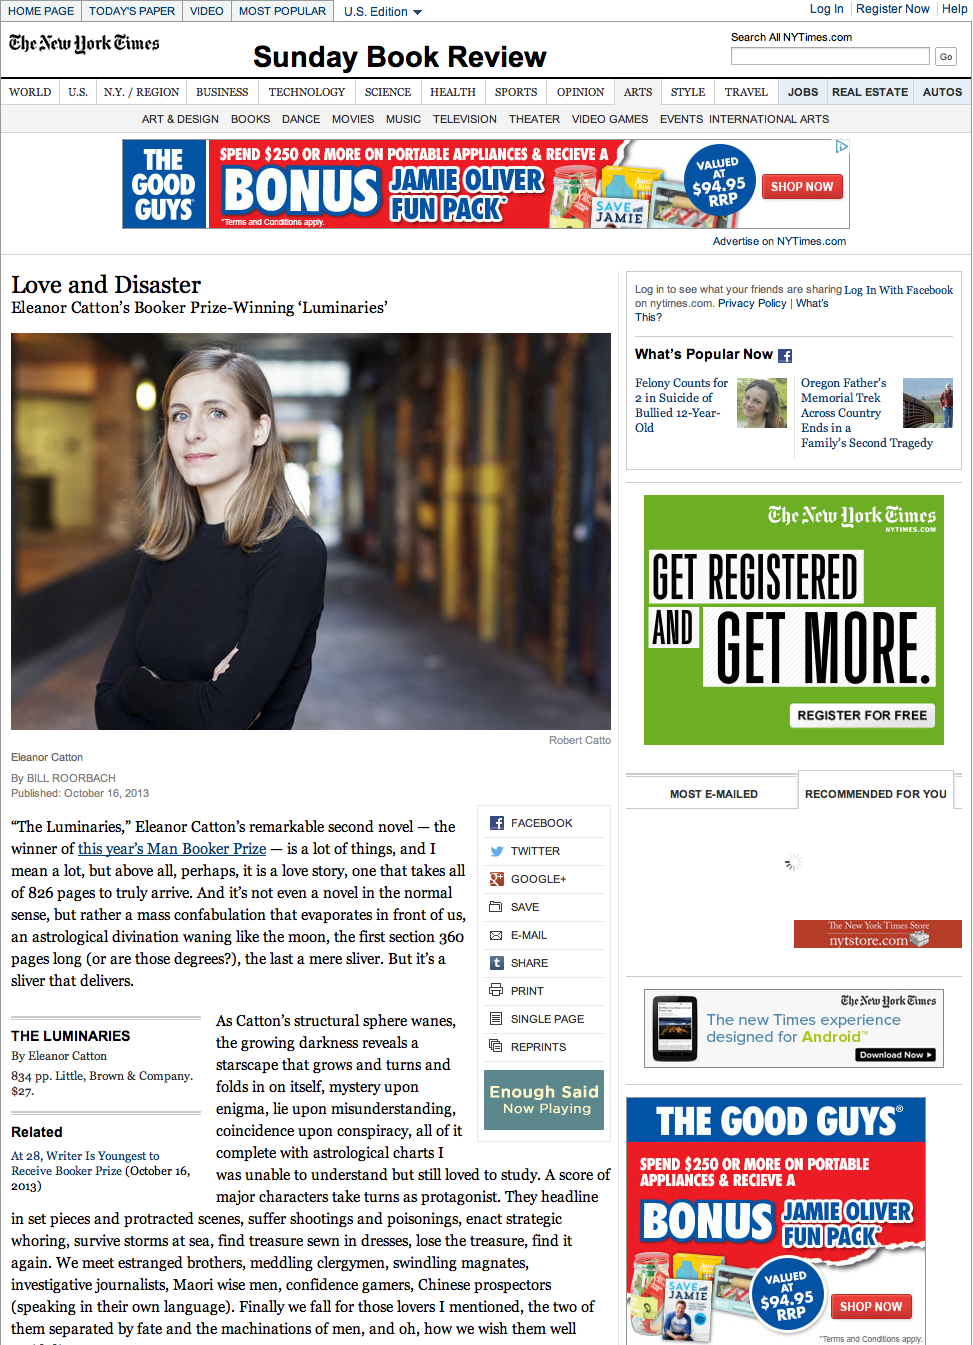 Eleanor Catton in the New York Times Review of Books